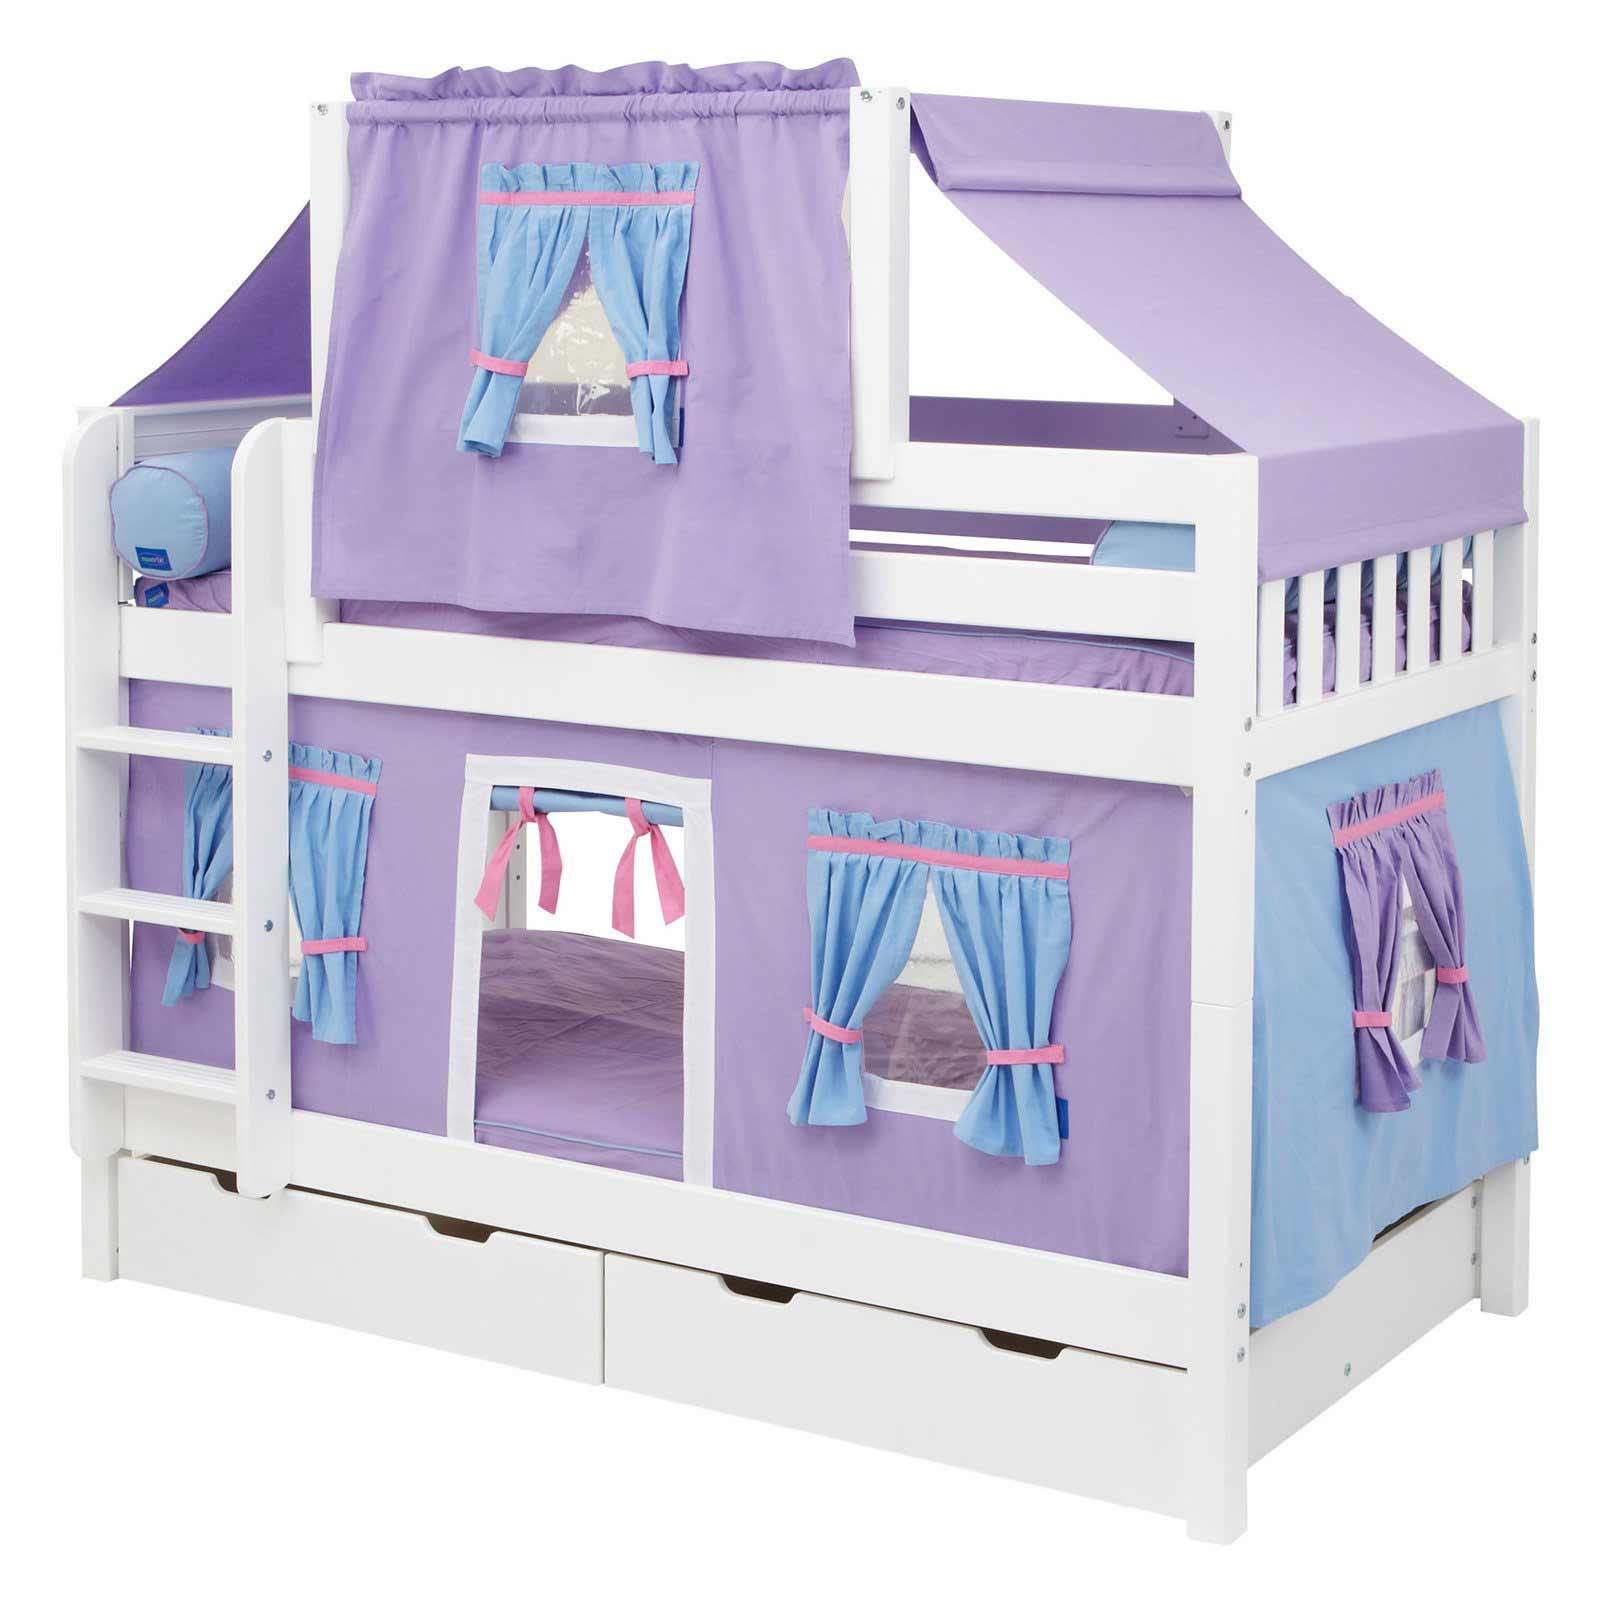 Bunk Bed Tent Top http://feelthehome.com/bed-tents-for-twin-beds-to-save-space